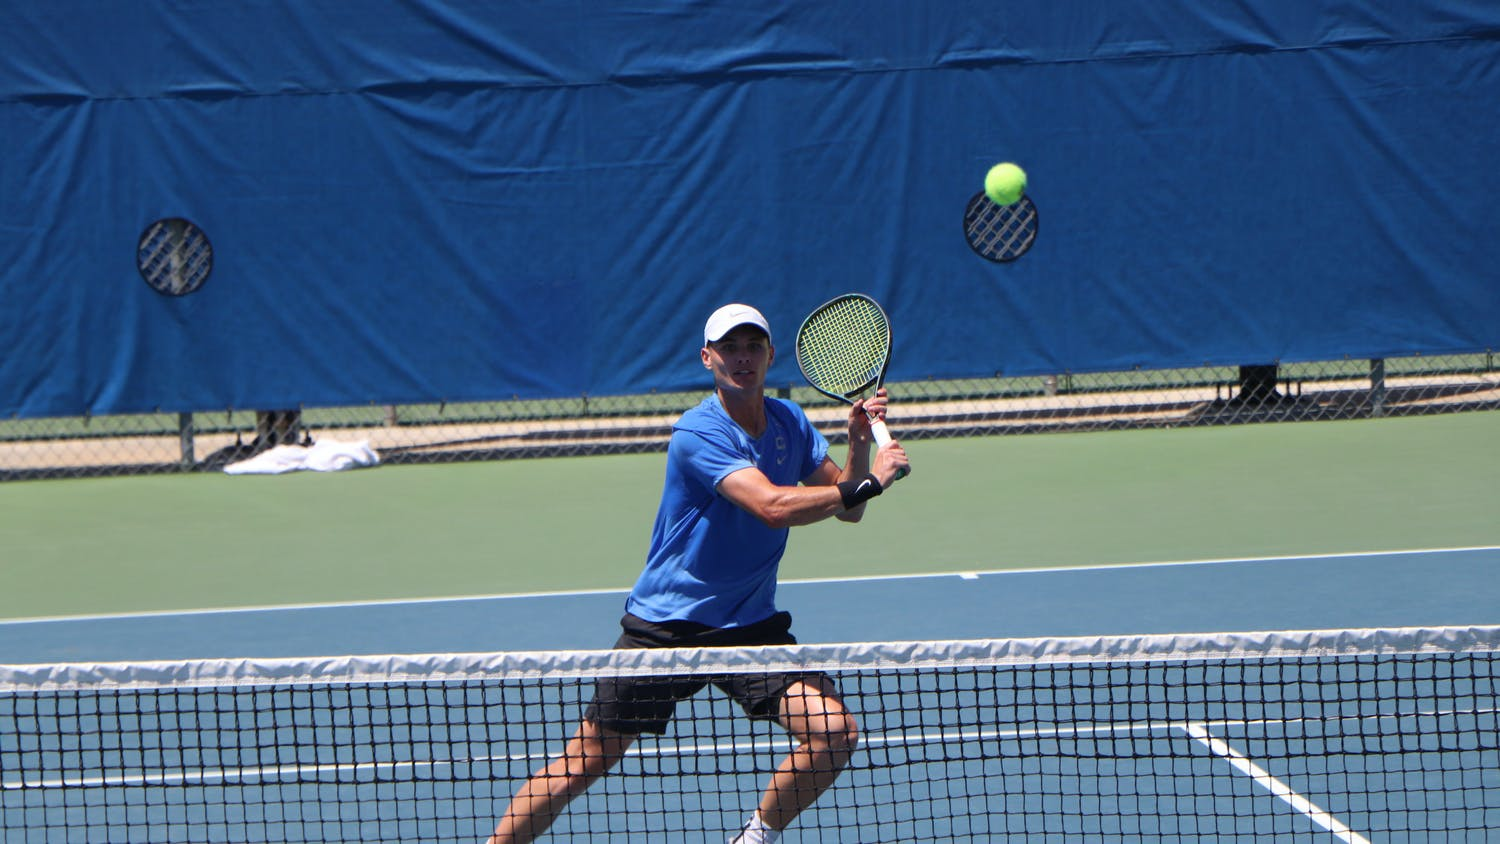 Florida's Sam Riffice prepares to return a ball against South Florida on May 9. Riffice defeated South Carolina's Daniel Rodrigues 3-6, 6-1, 6-4 to win the individual singles national championship Friday afternoon.